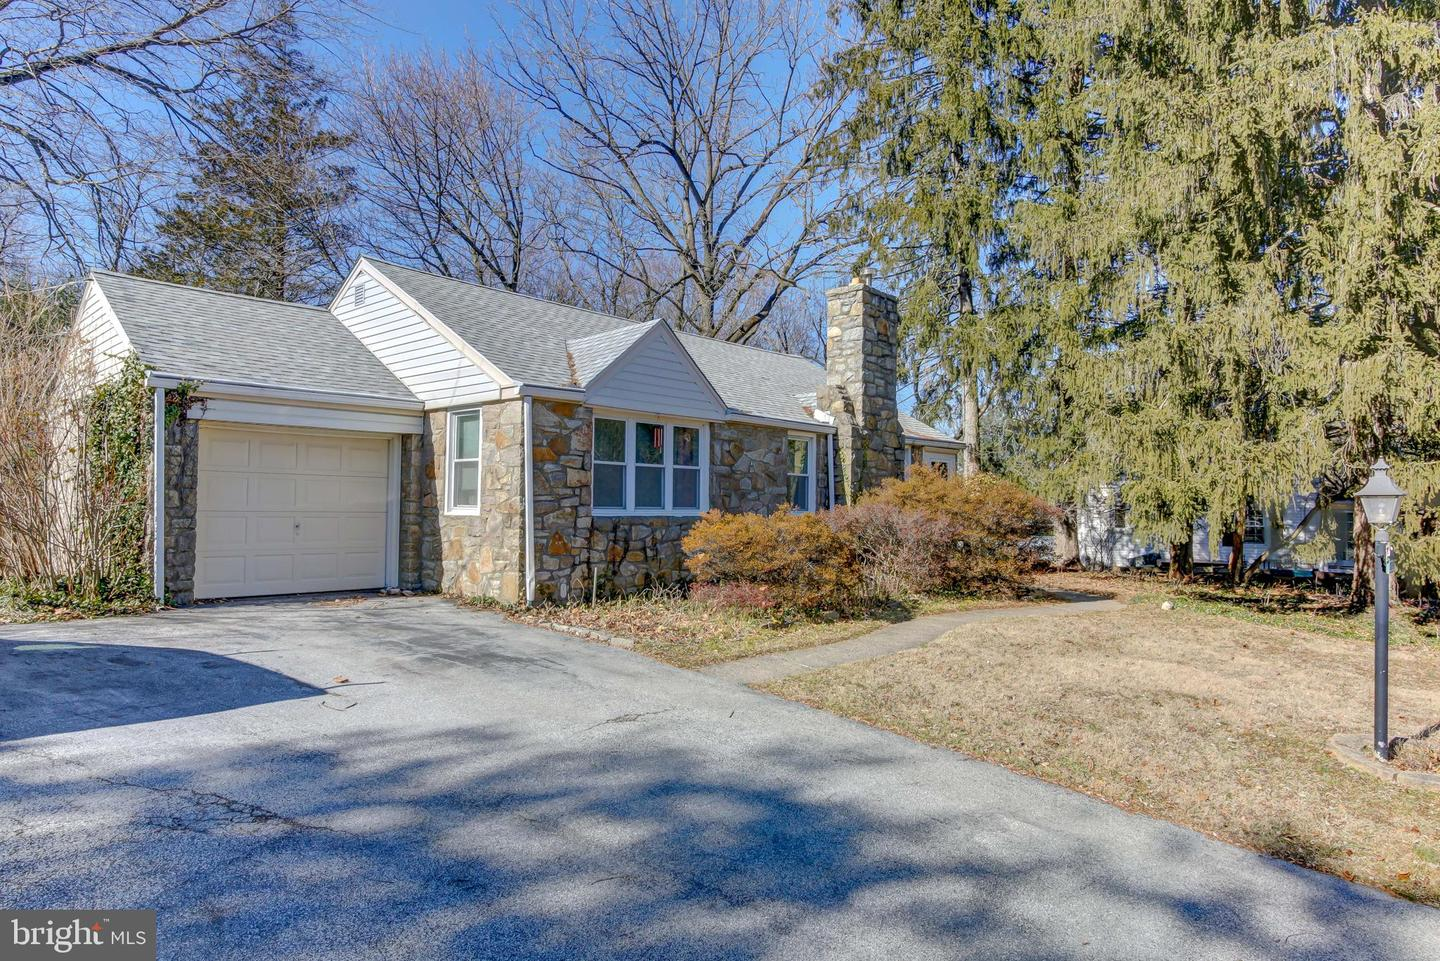 124 N Sproul Road Broomall, PA 19008